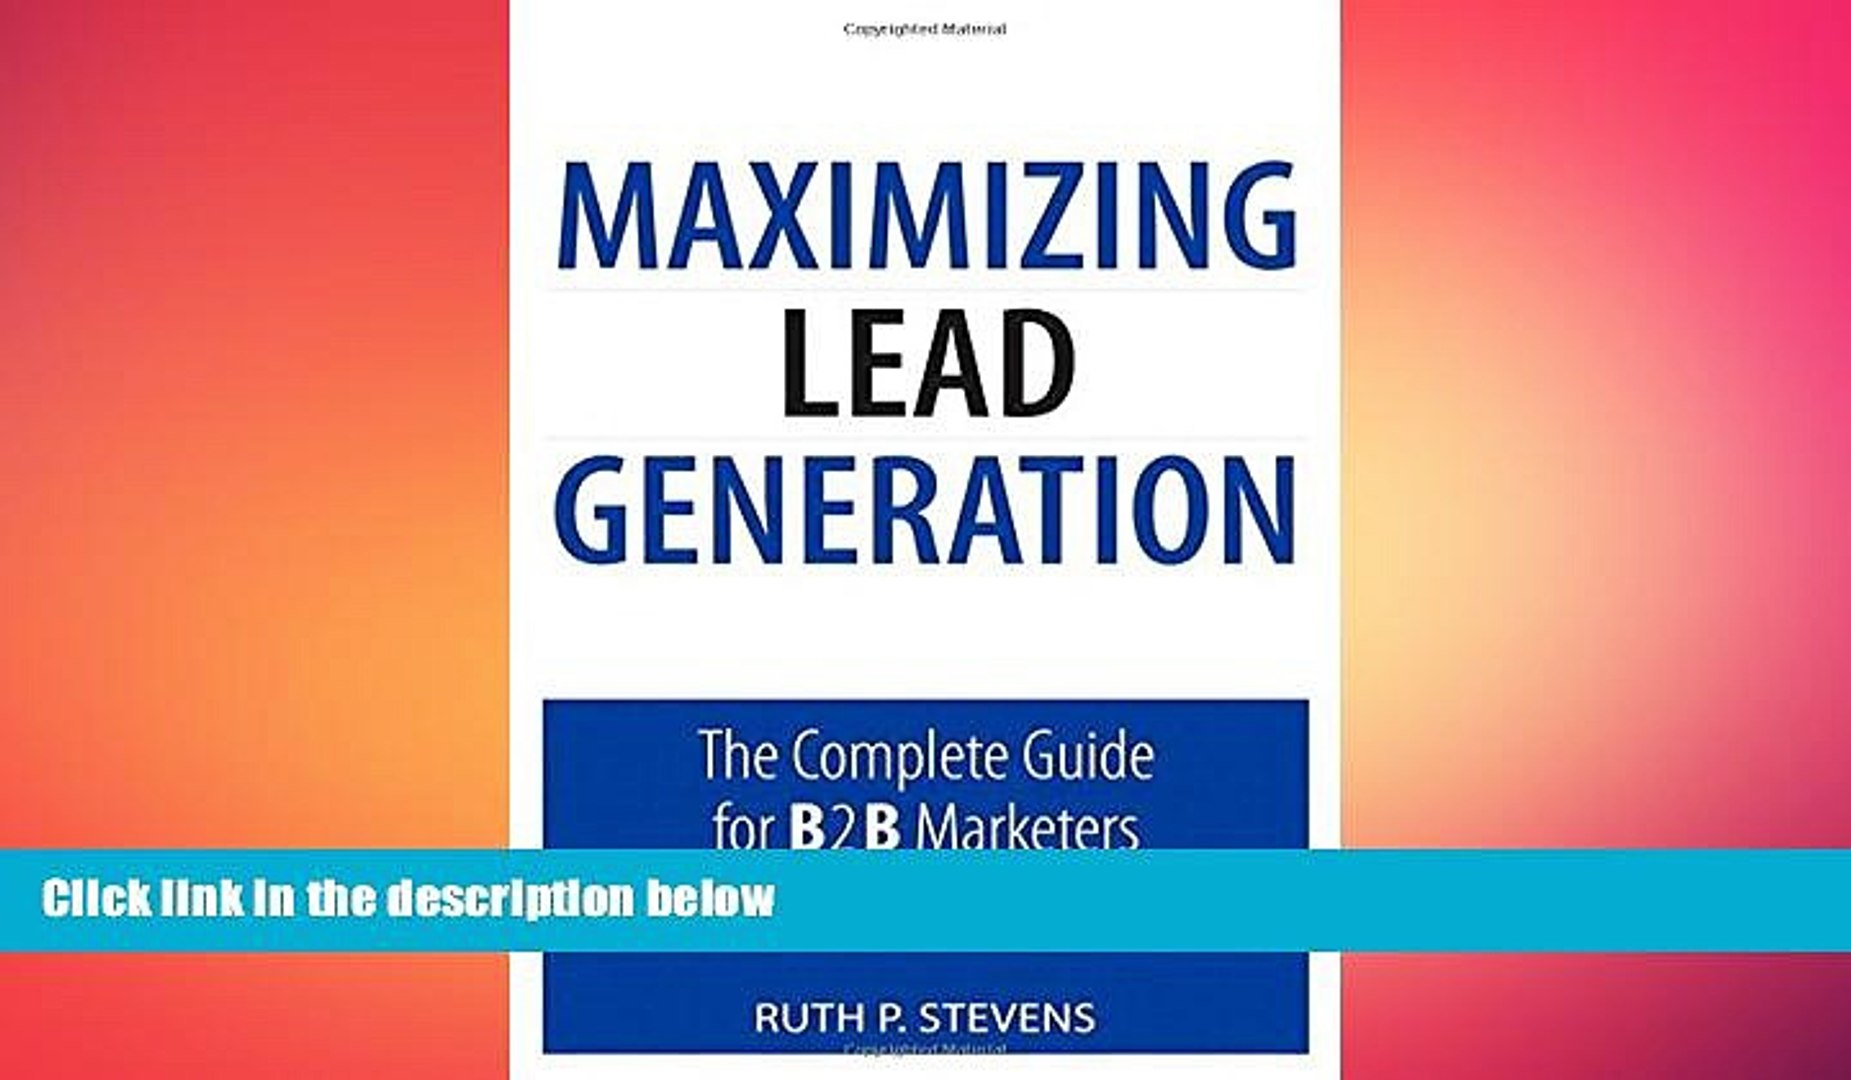 Maximizing Lead Generation The Complete Guide for B2B Marketers